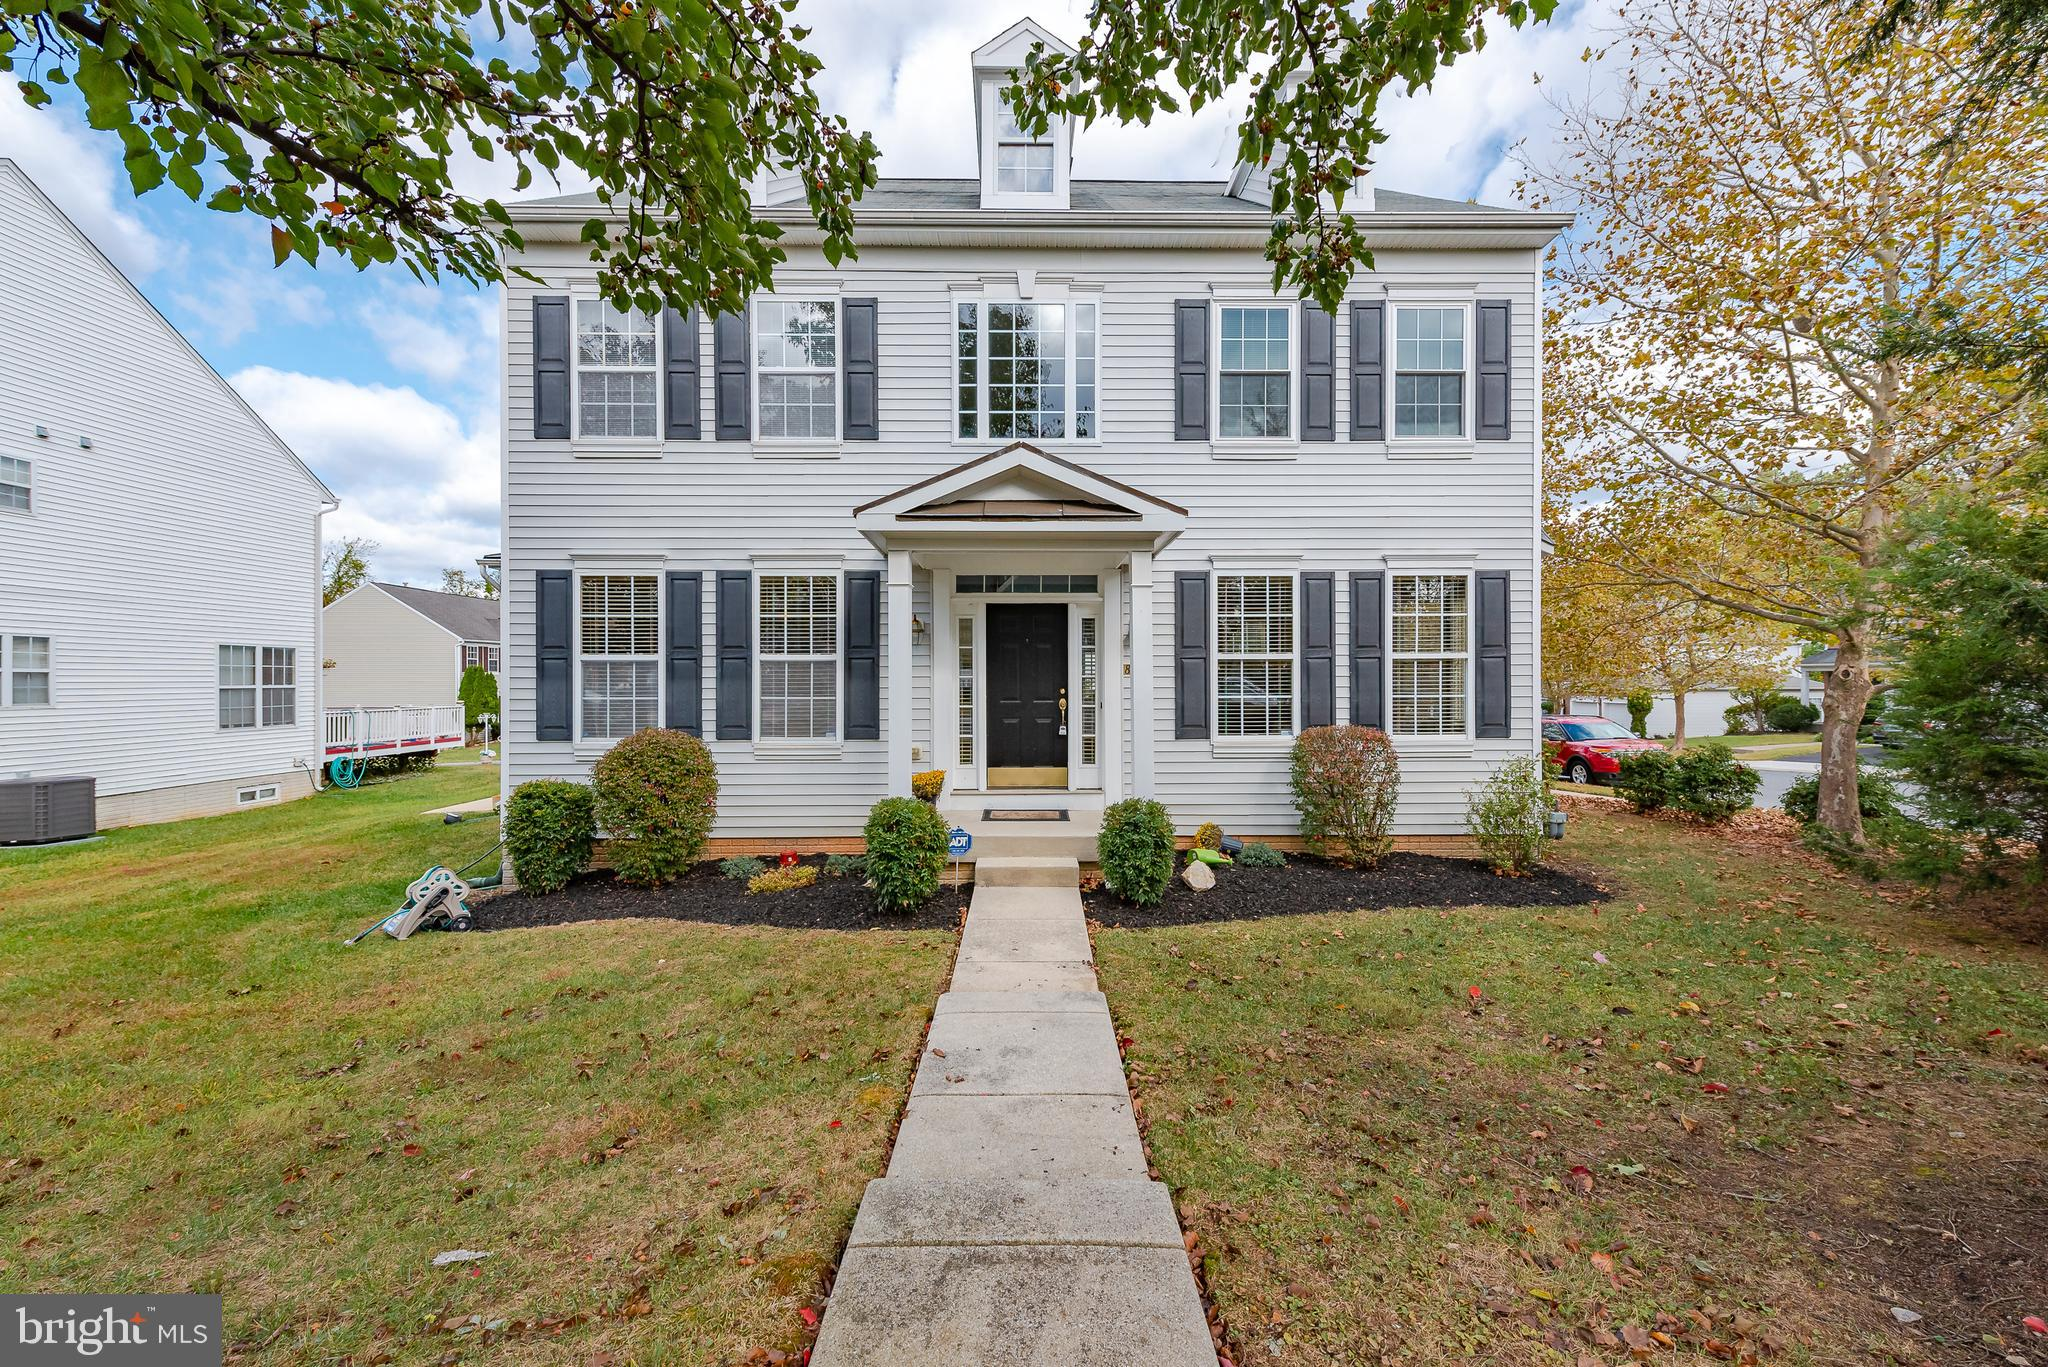 8670 WINANDS ROAD, RANDALLSTOWN, MD 21133